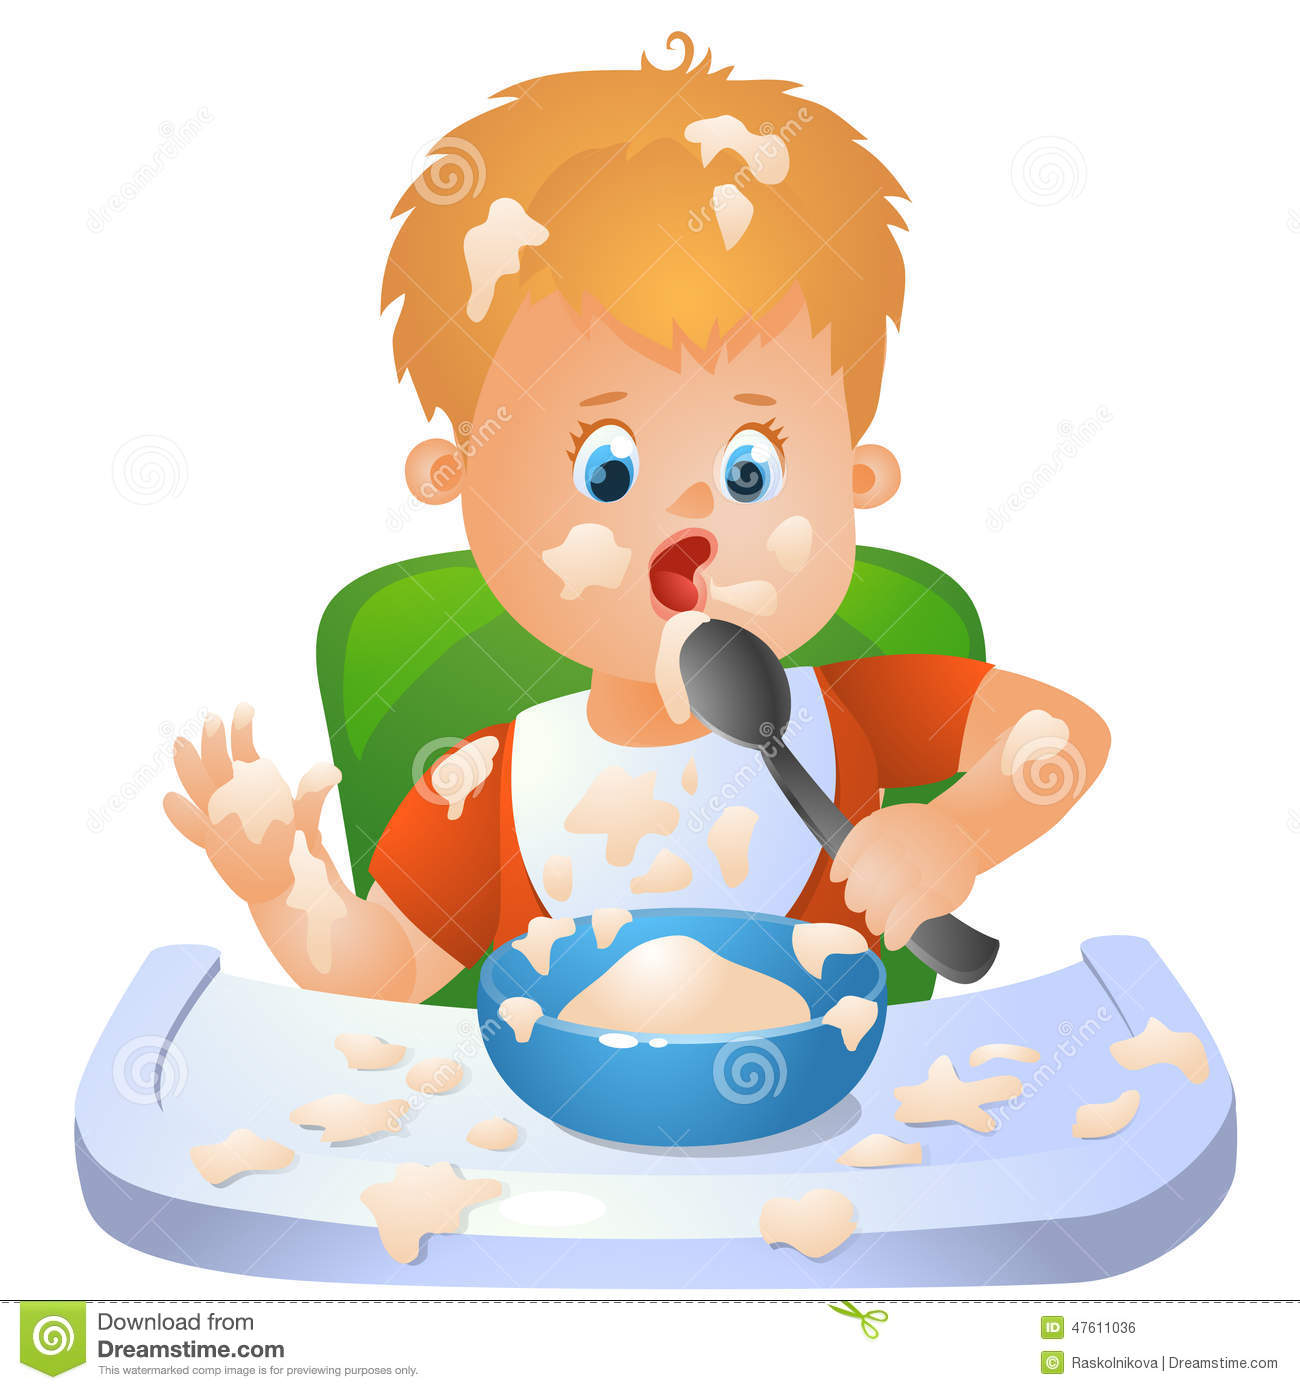 baby eating clipart - photo #27